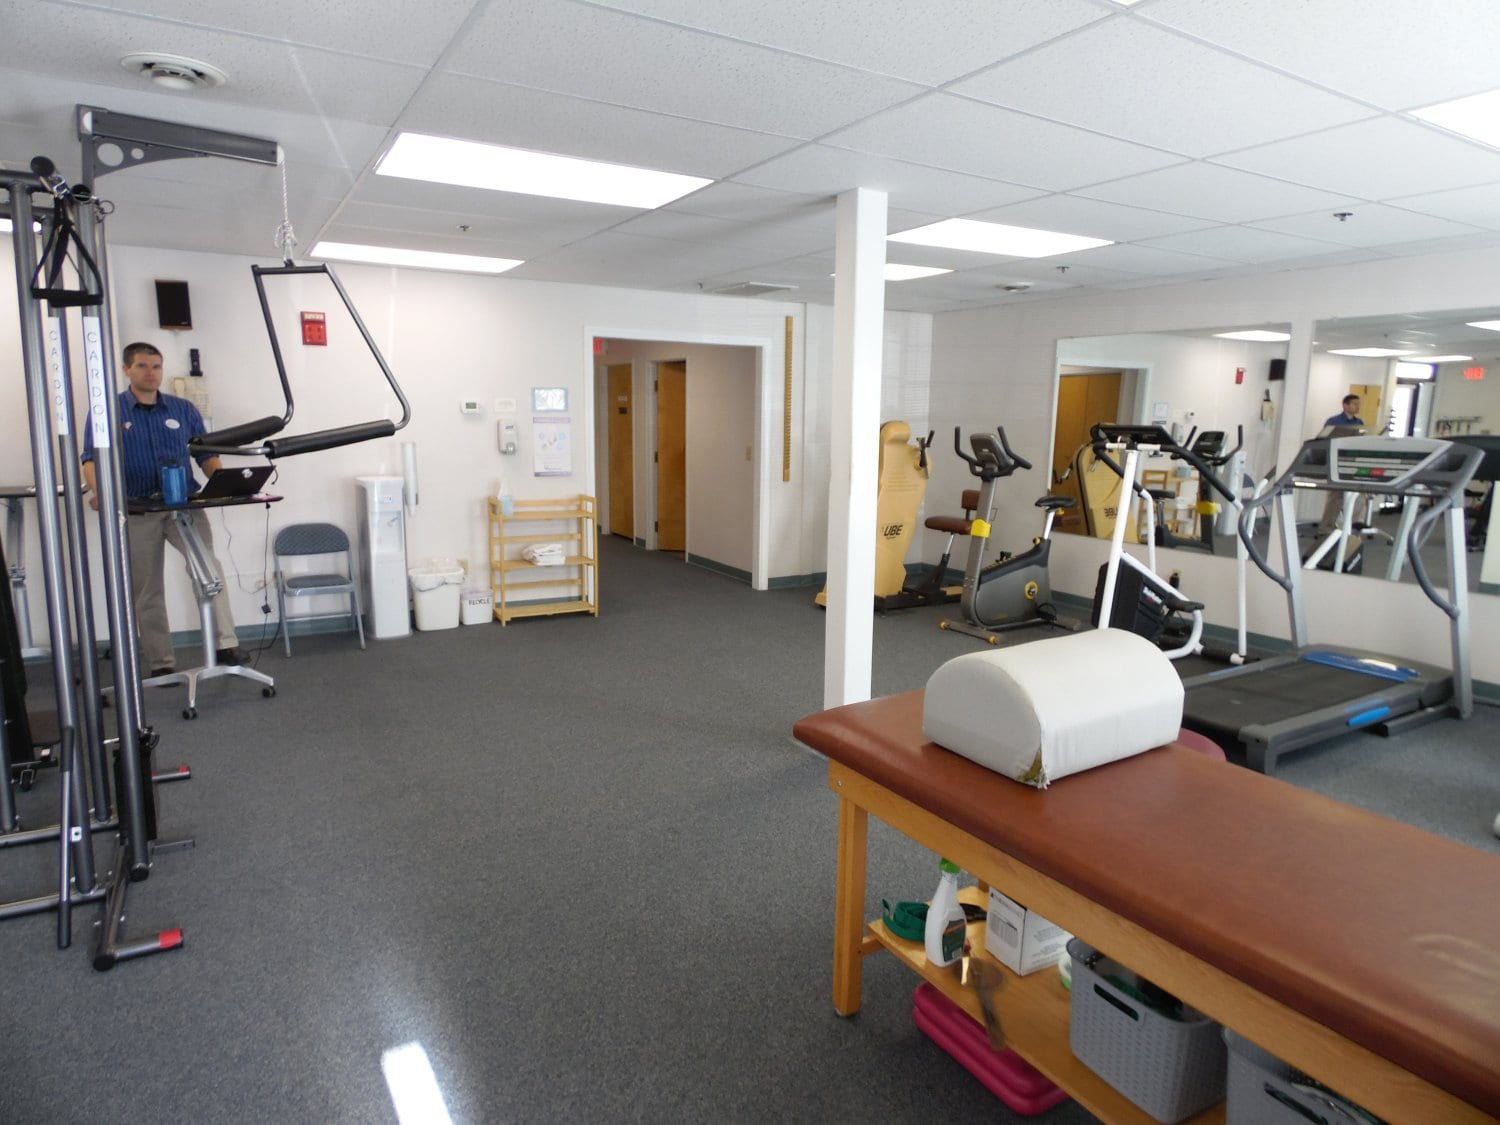 Here is a photo of the equipment used for physical therapy at our clinic in Exeter, New Hampshire.